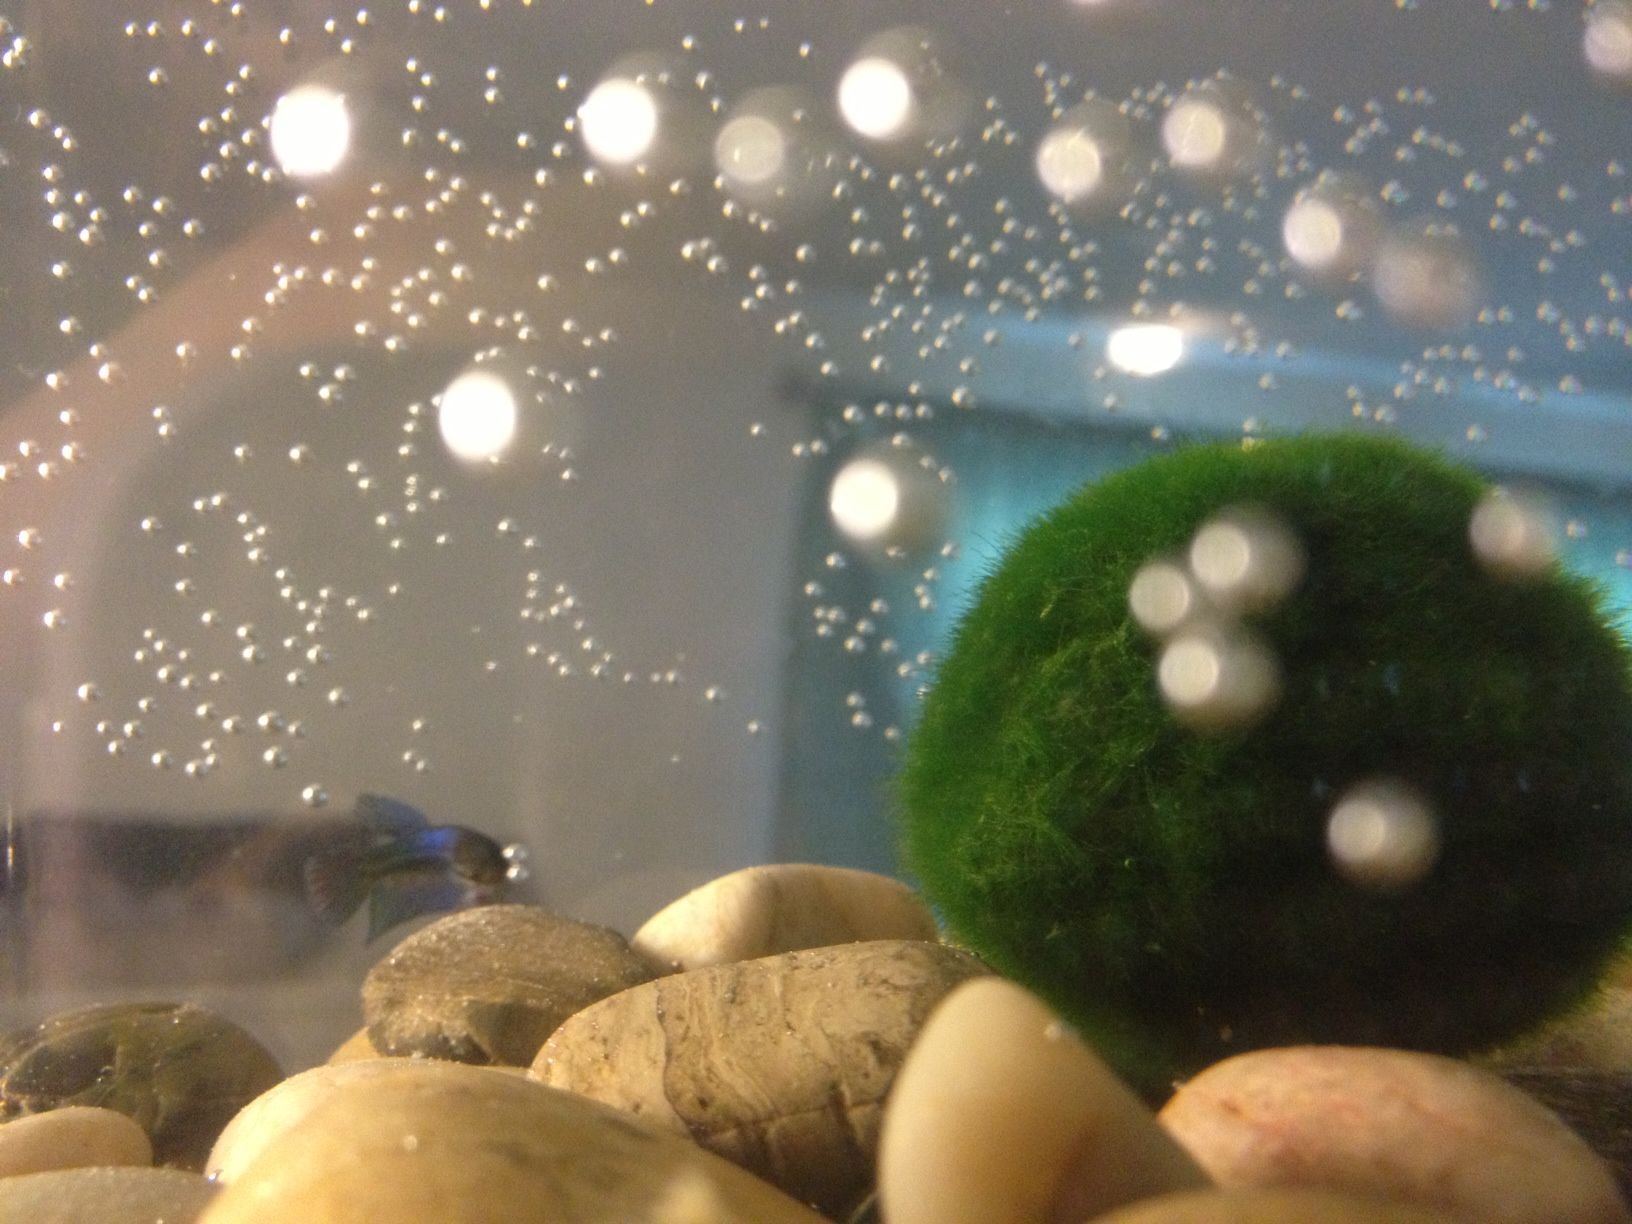 My new tank baby betta fish with marimo moss ball for Baby betta fish